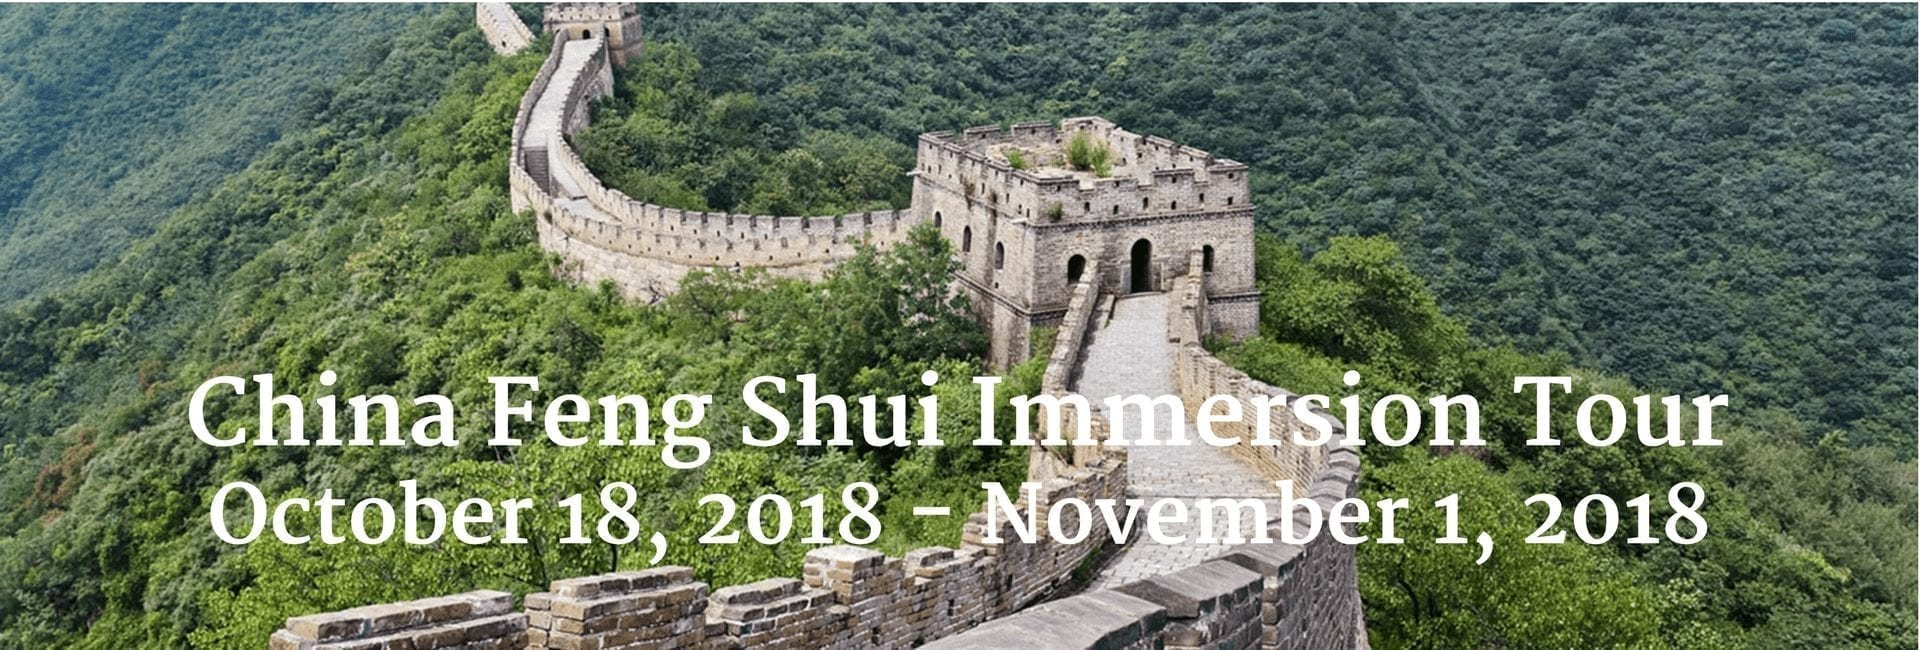 China Feng Shui Immersion Tour 2018 with Feng Shui Designs and the International Feng Shui Guild